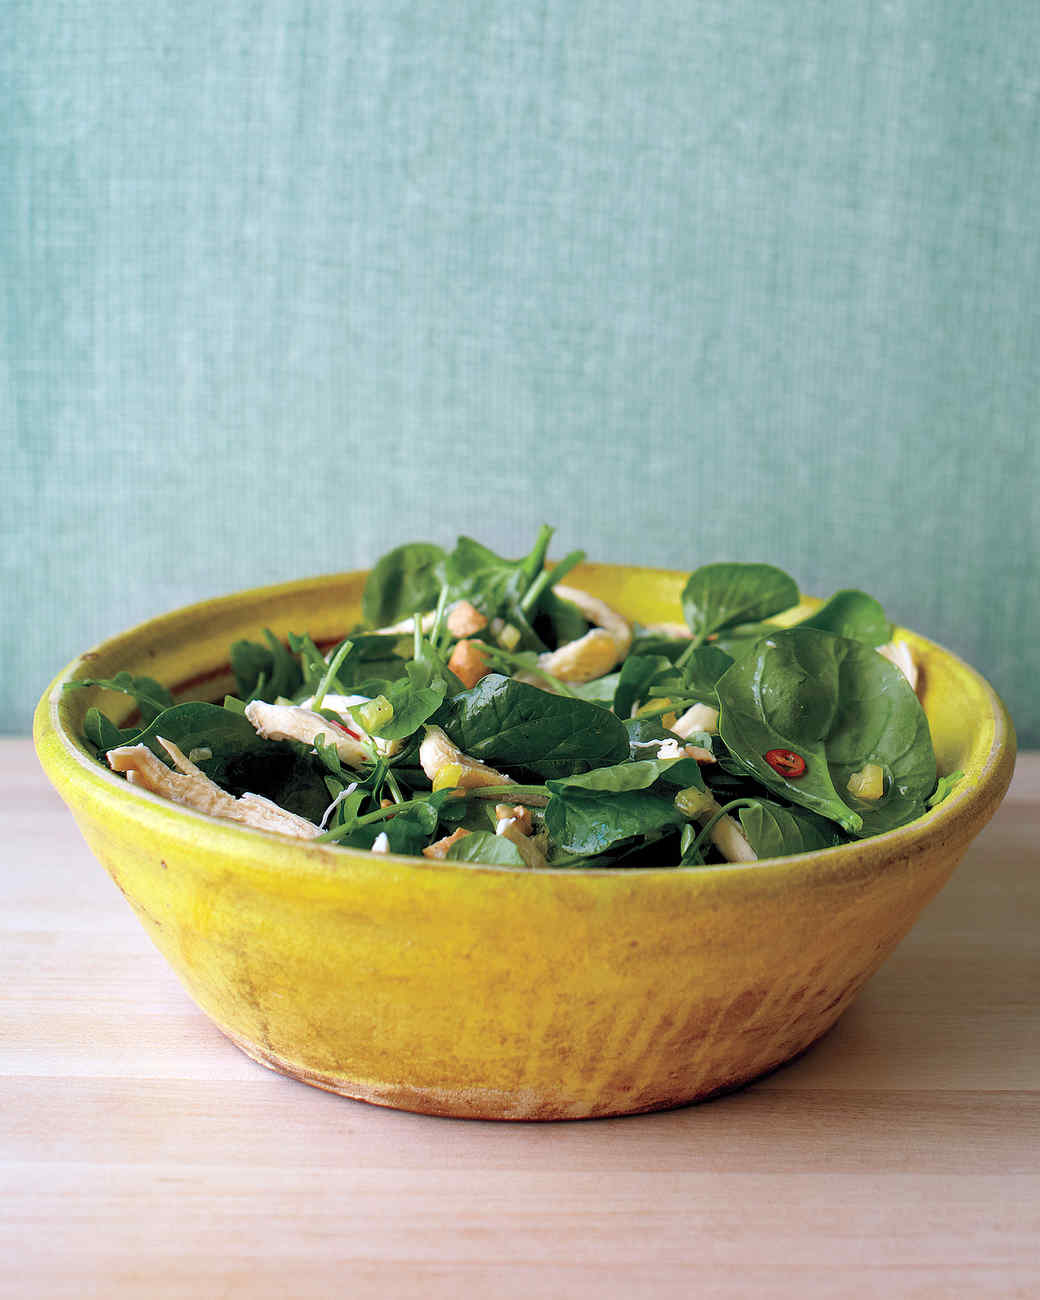 med106560_0311_sea_chick_salad.jpg